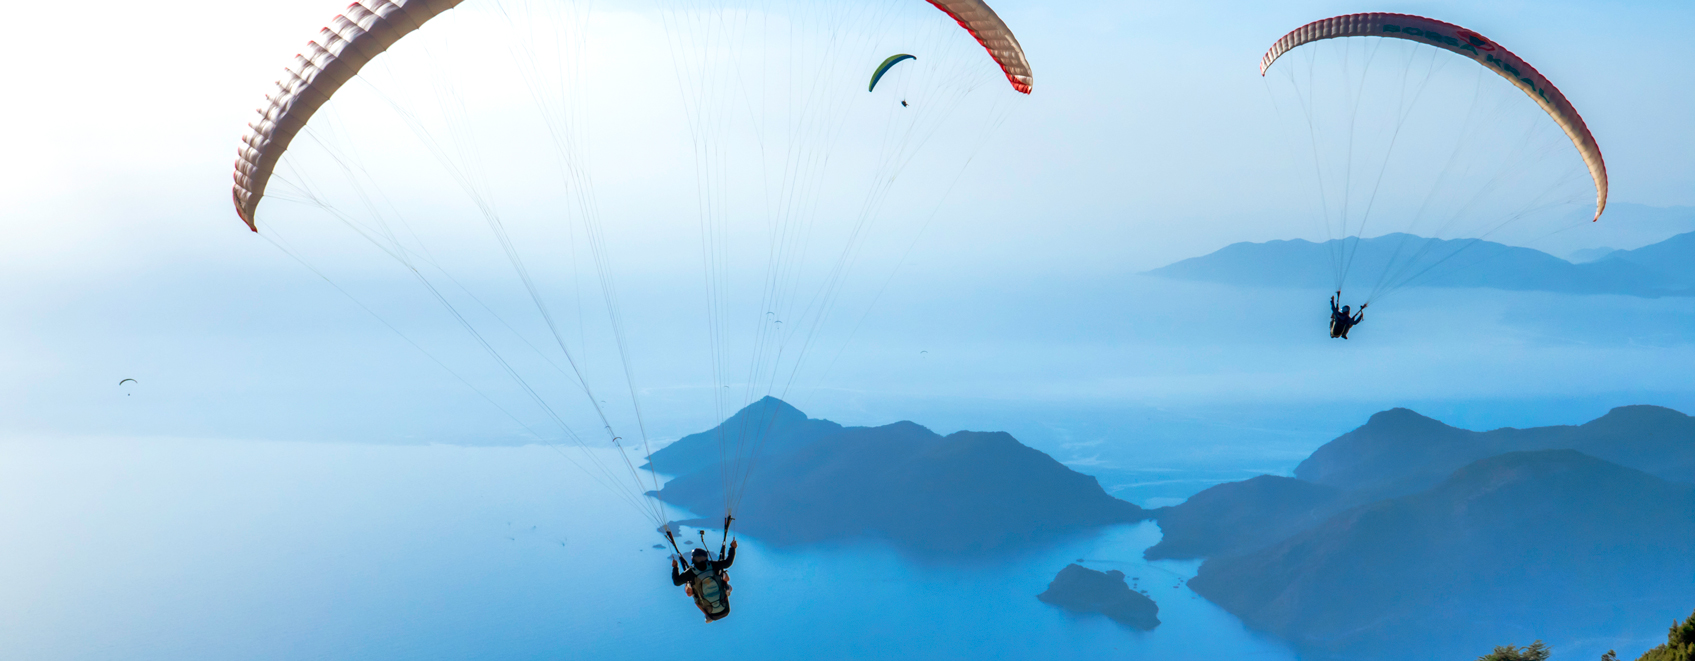 three persons parasailing in sky